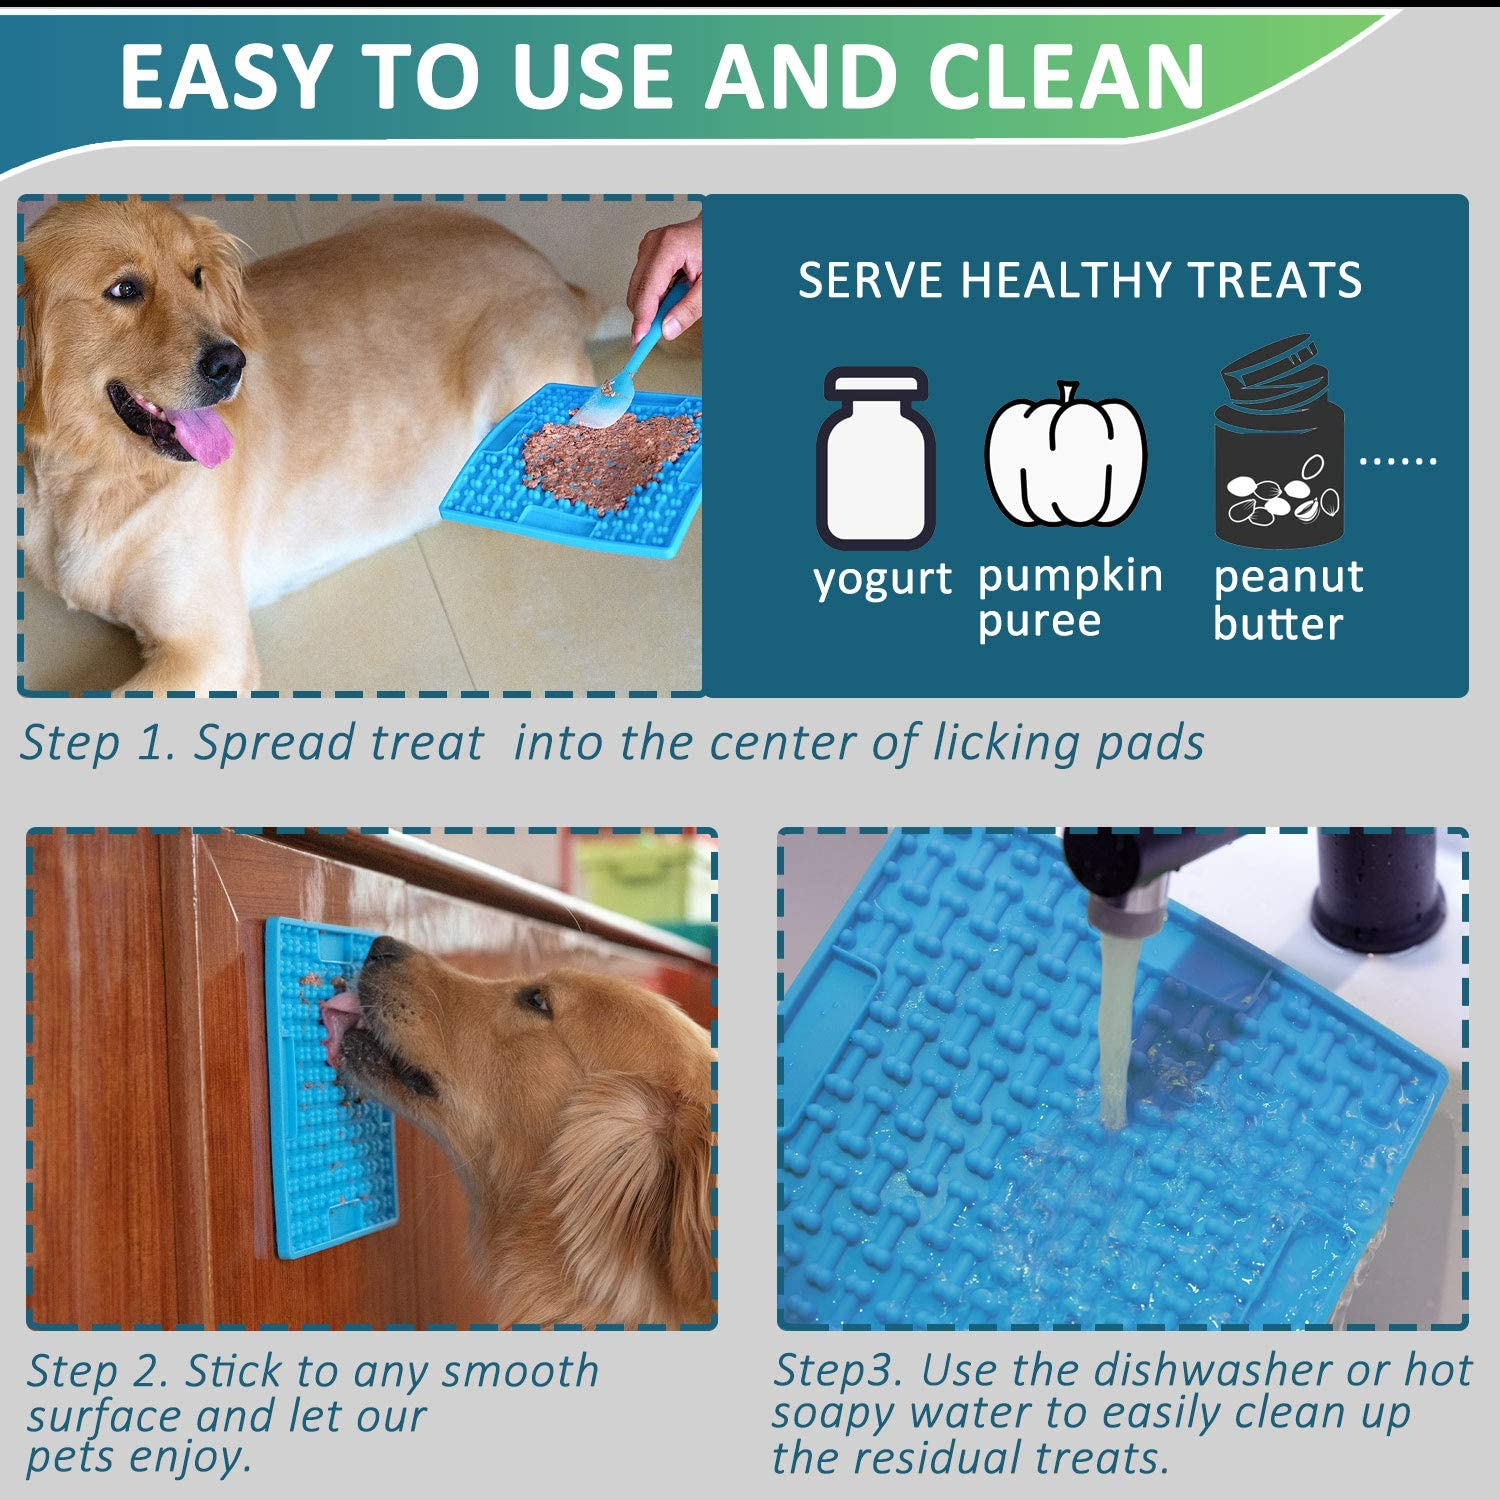 Slow Feeder Licking Pads for Pet Bathing Treats and Training Yogurt or Peanut Butter 7SUOKITO 2 Pack Dog Lick Mats with a Silicone Spreader Grooming Boredom Buster Ideal for Dog Food